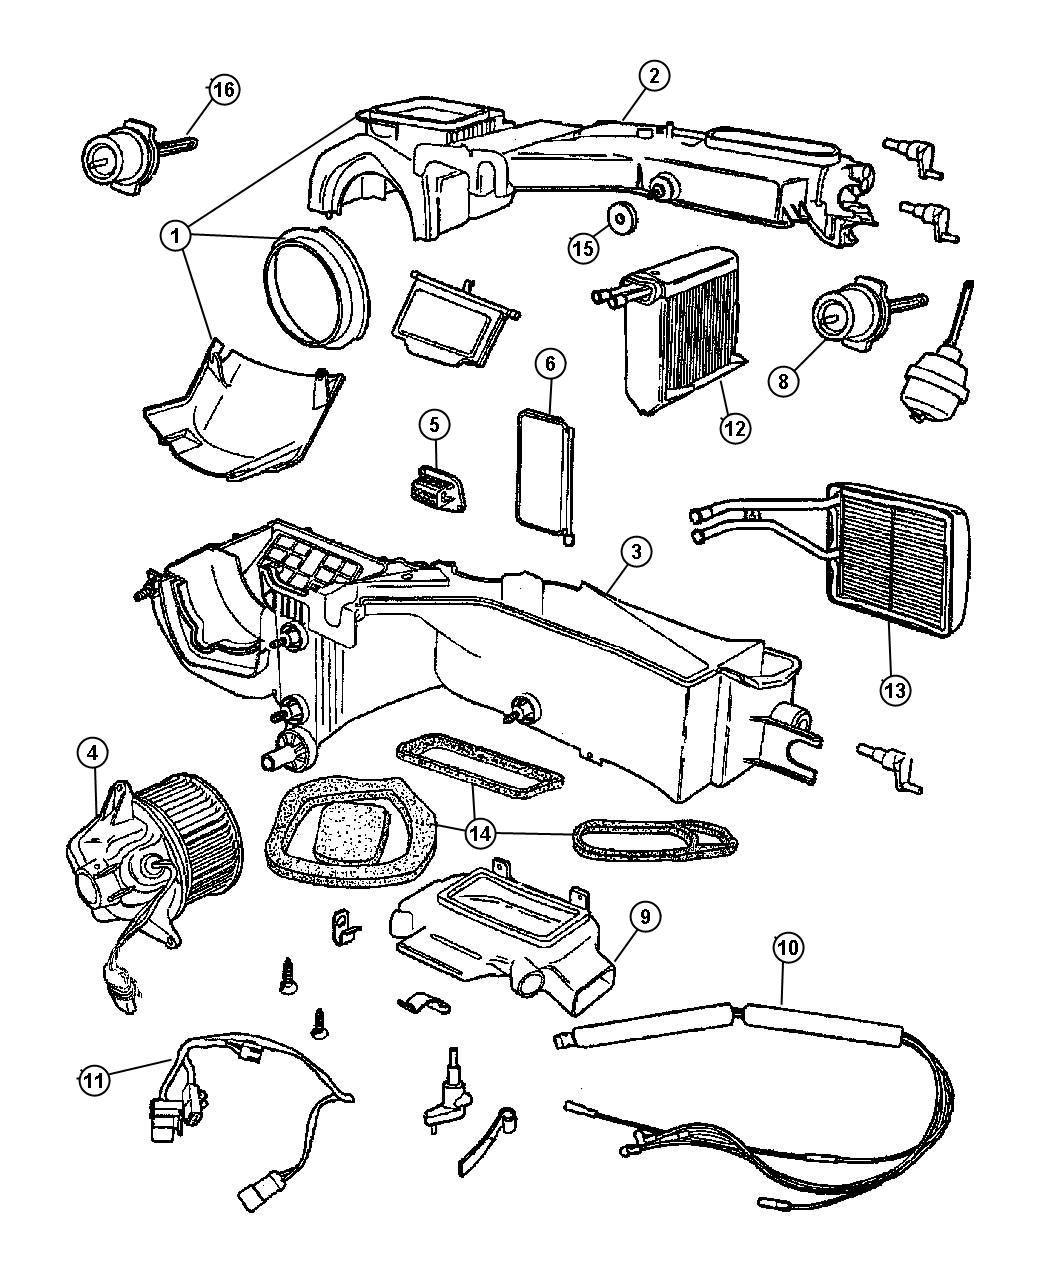 Jeep Wrangler Vacuum Harness Used For Heater And A